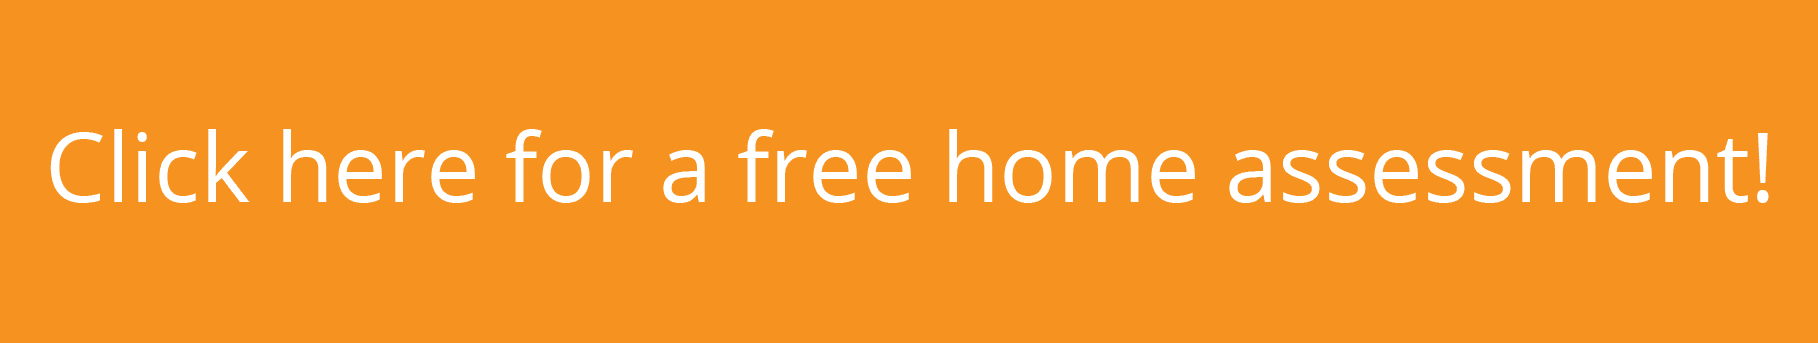 Click here for a free home assessment